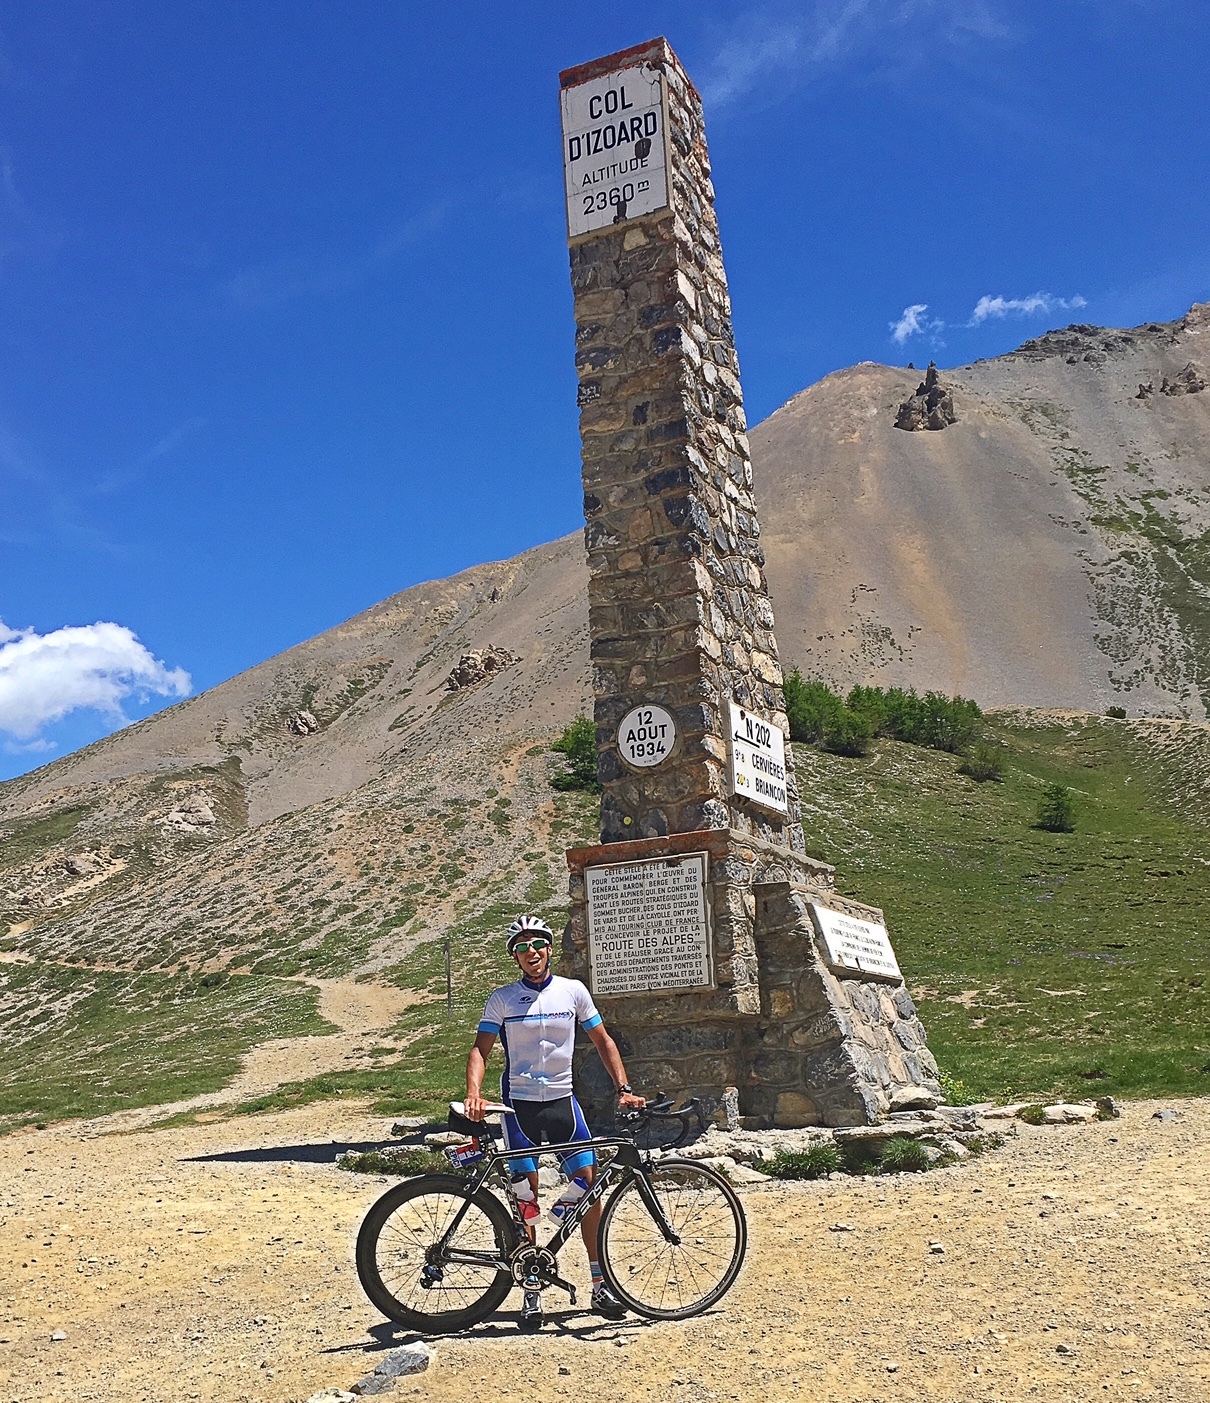 Col D'izoard Summit - Feeling every inch of that 2360m altitude